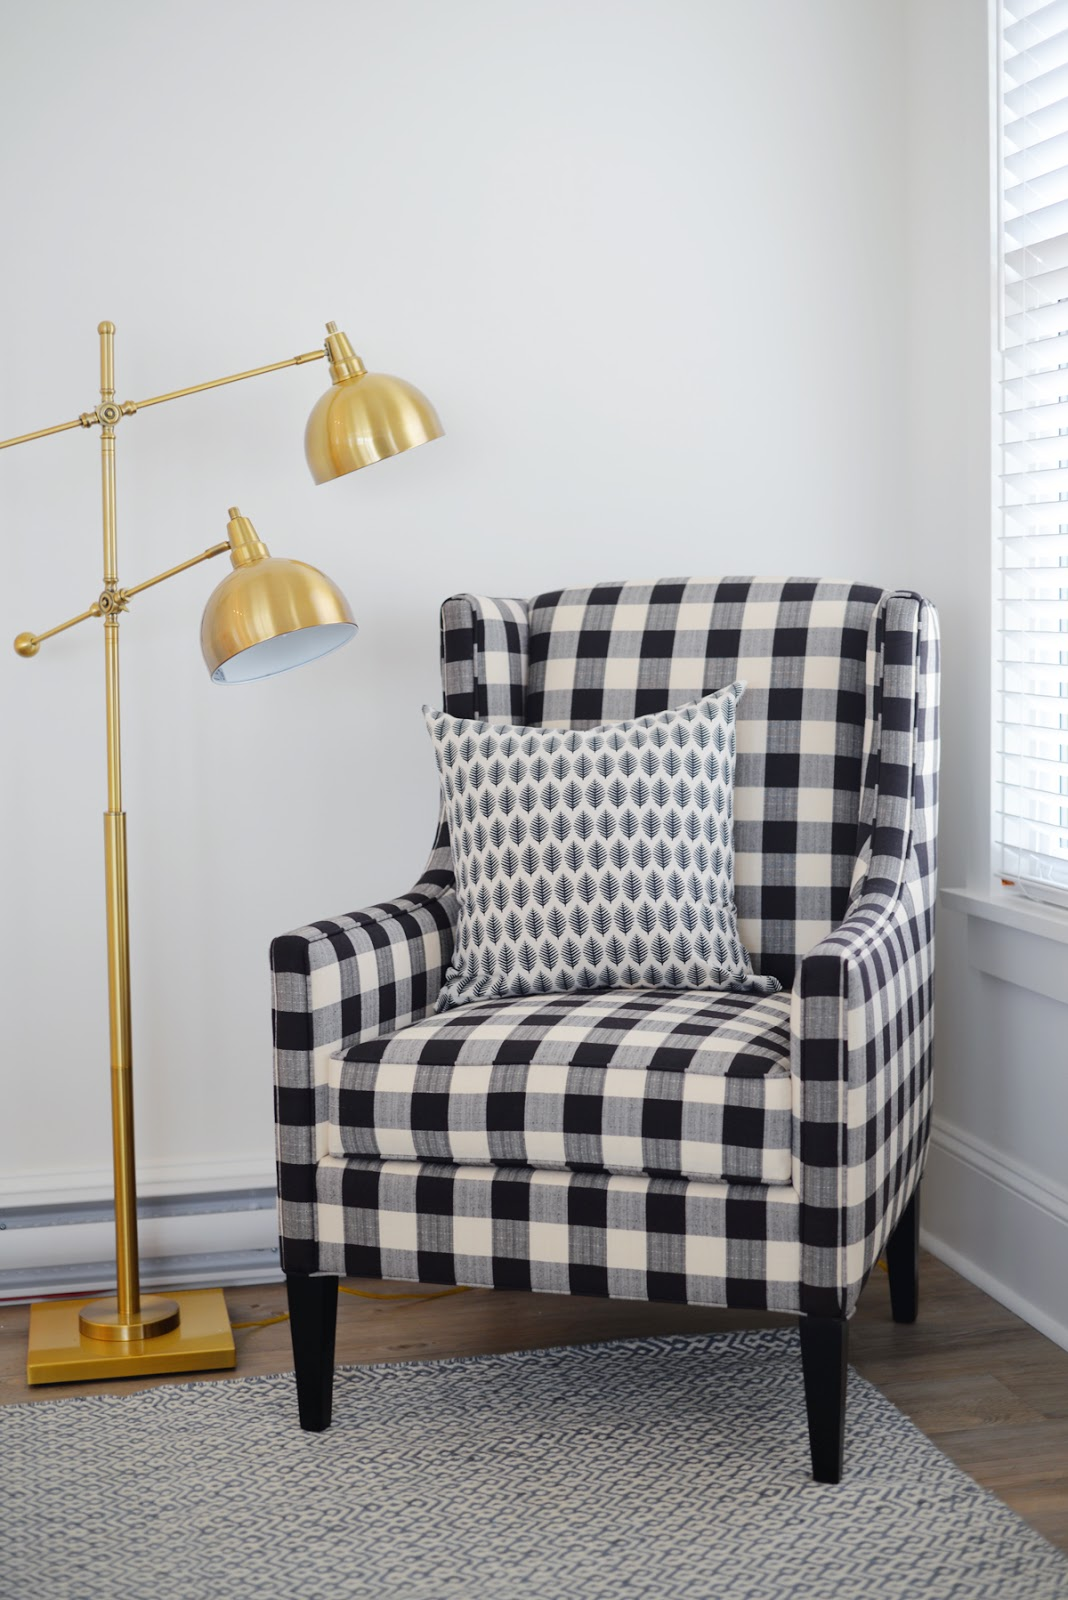 Ramblingrenovators.ca | Buffalo plaid chair, brass lamp, modern farmhouse, cottage style